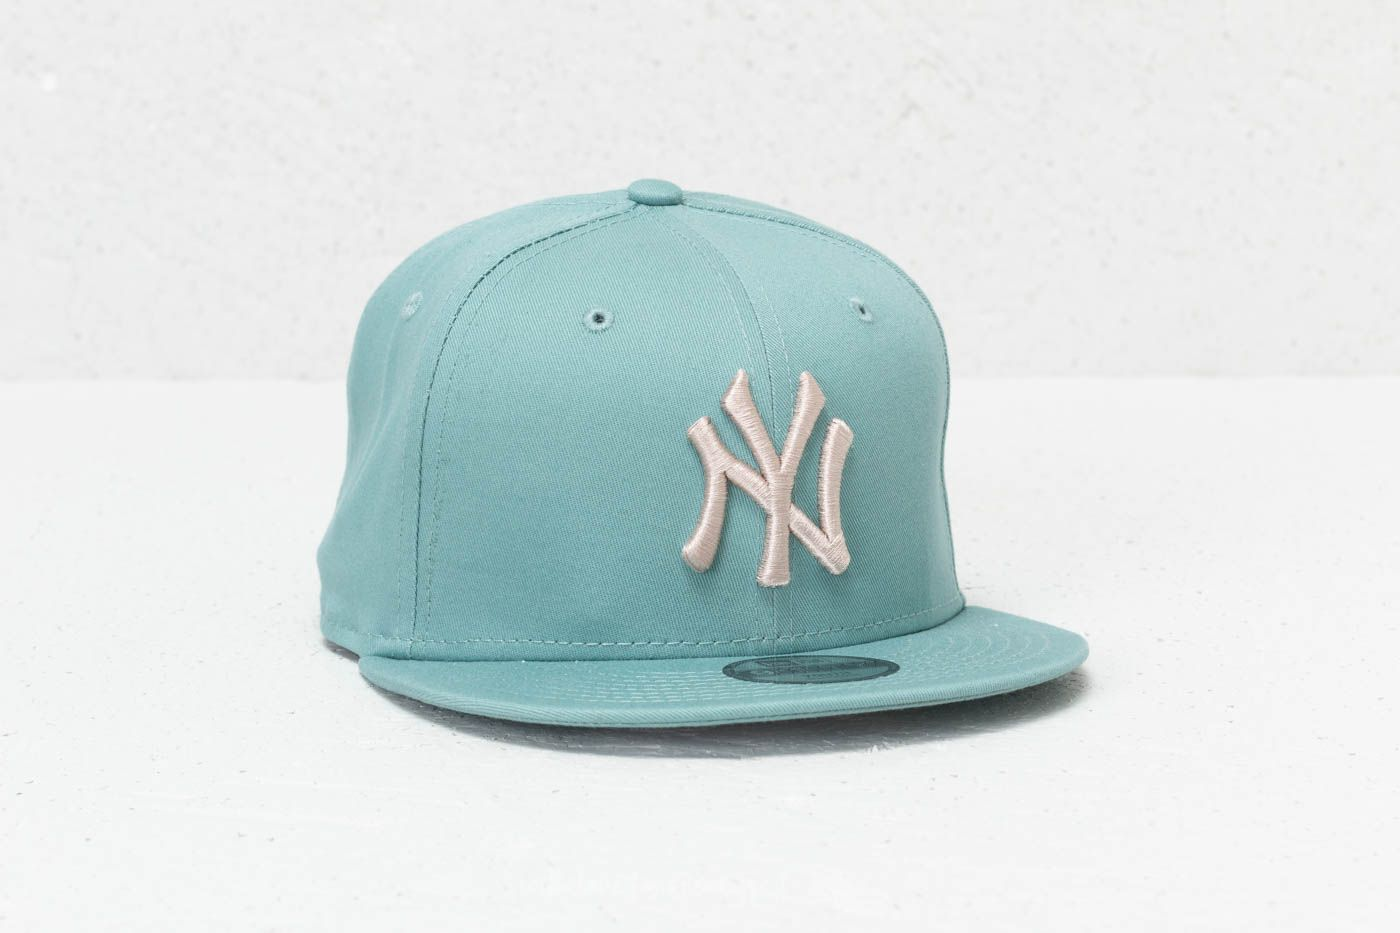 346bc8dec19 New Era 9Fifty Youth MLB League Essential New York Yankees Cap Ash Green   Satin at